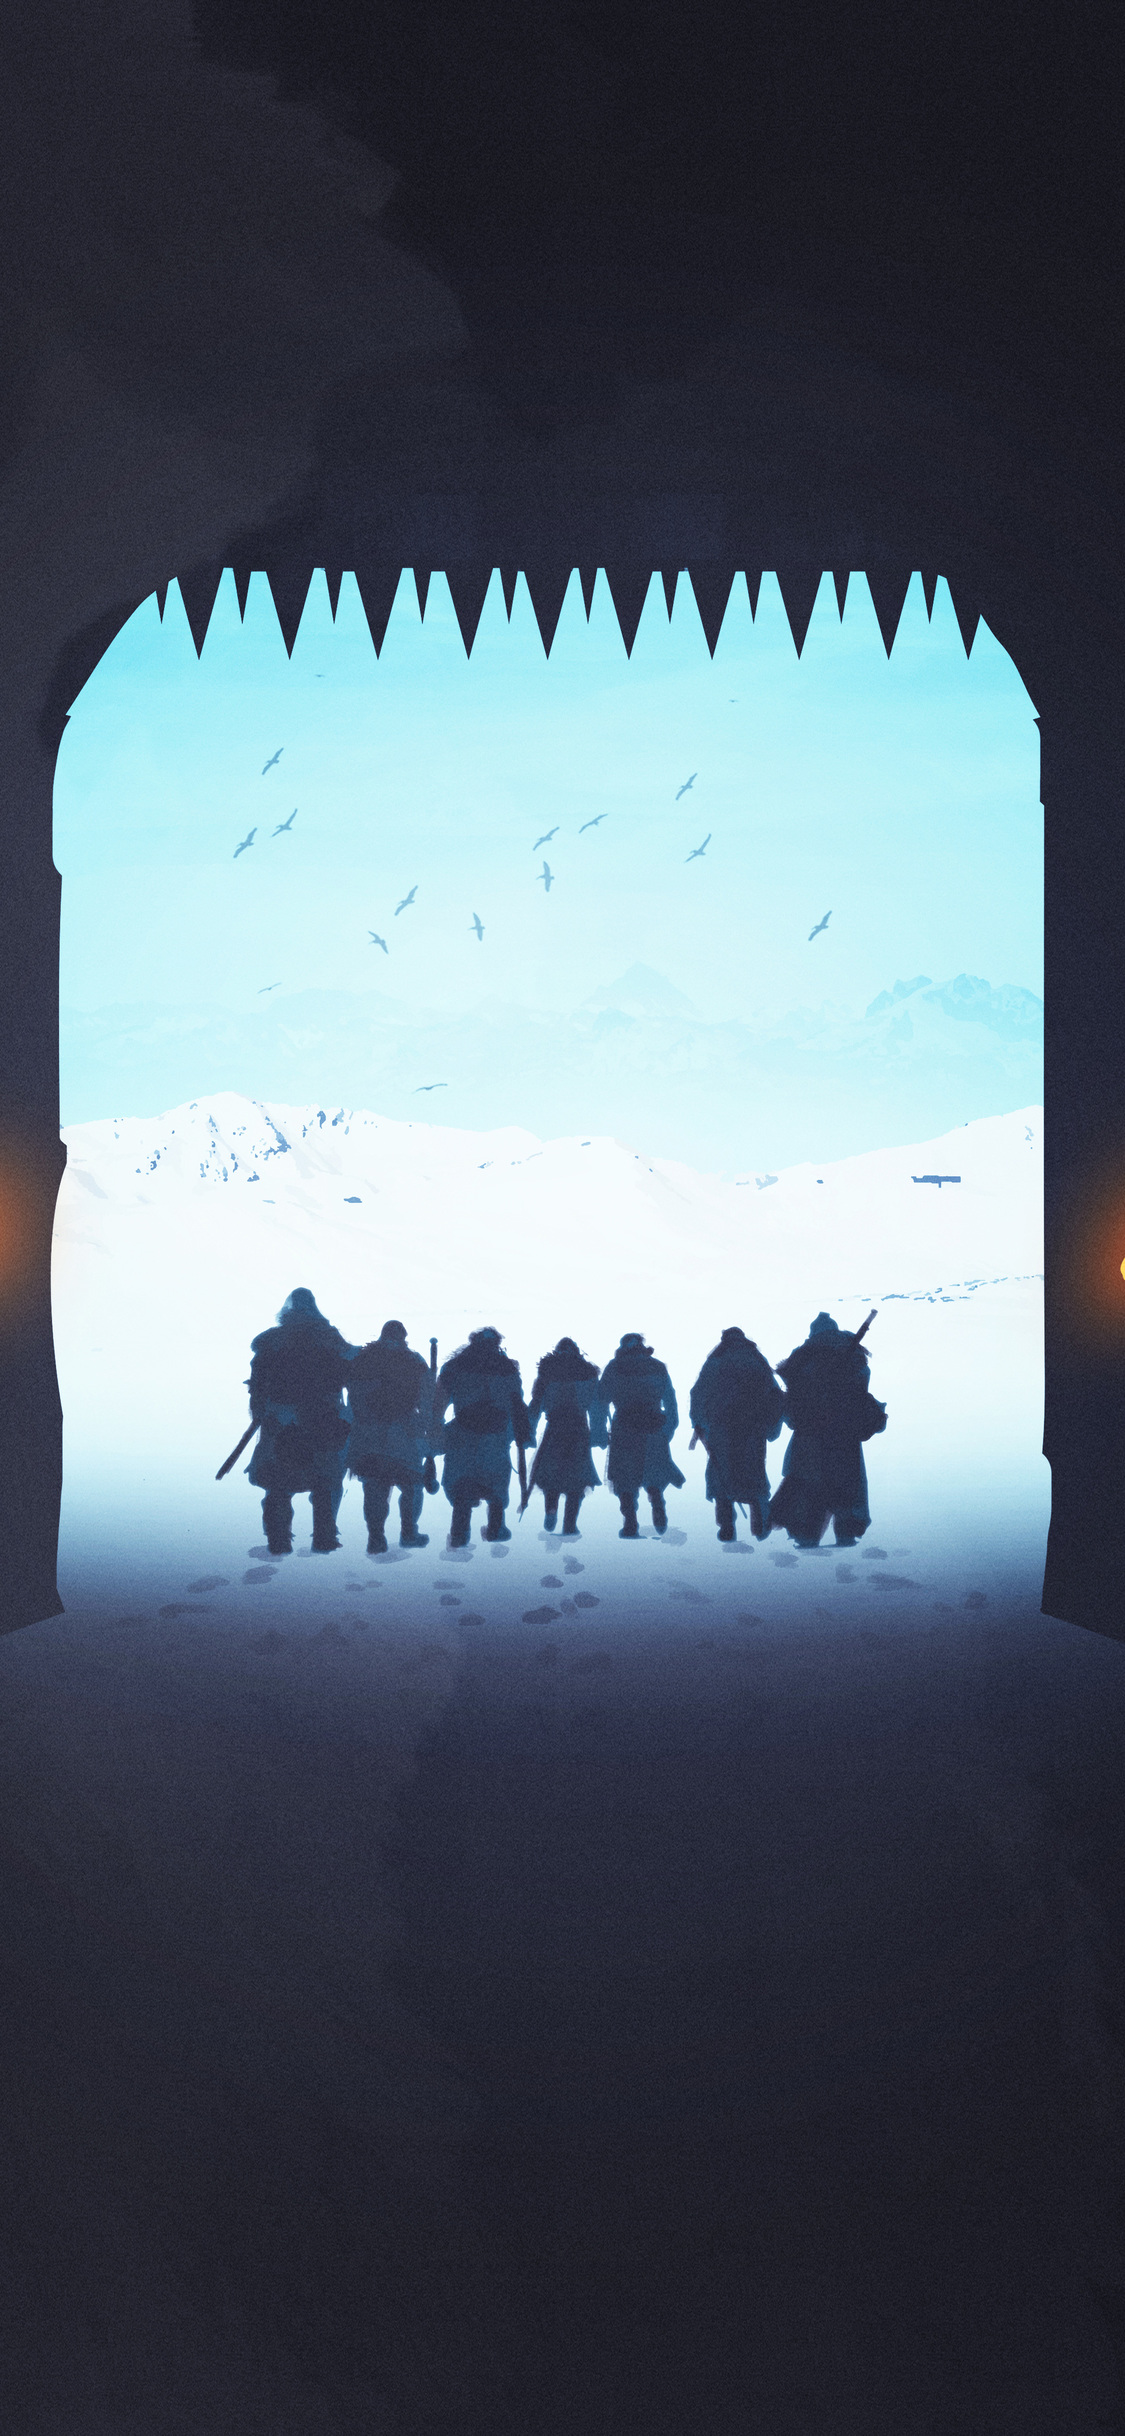 game of thrones night watch the wall iPhone game of thrones wallpaper - Tổng hợp ảnh nền Game of Thrones đẹp nhất cho iPhone